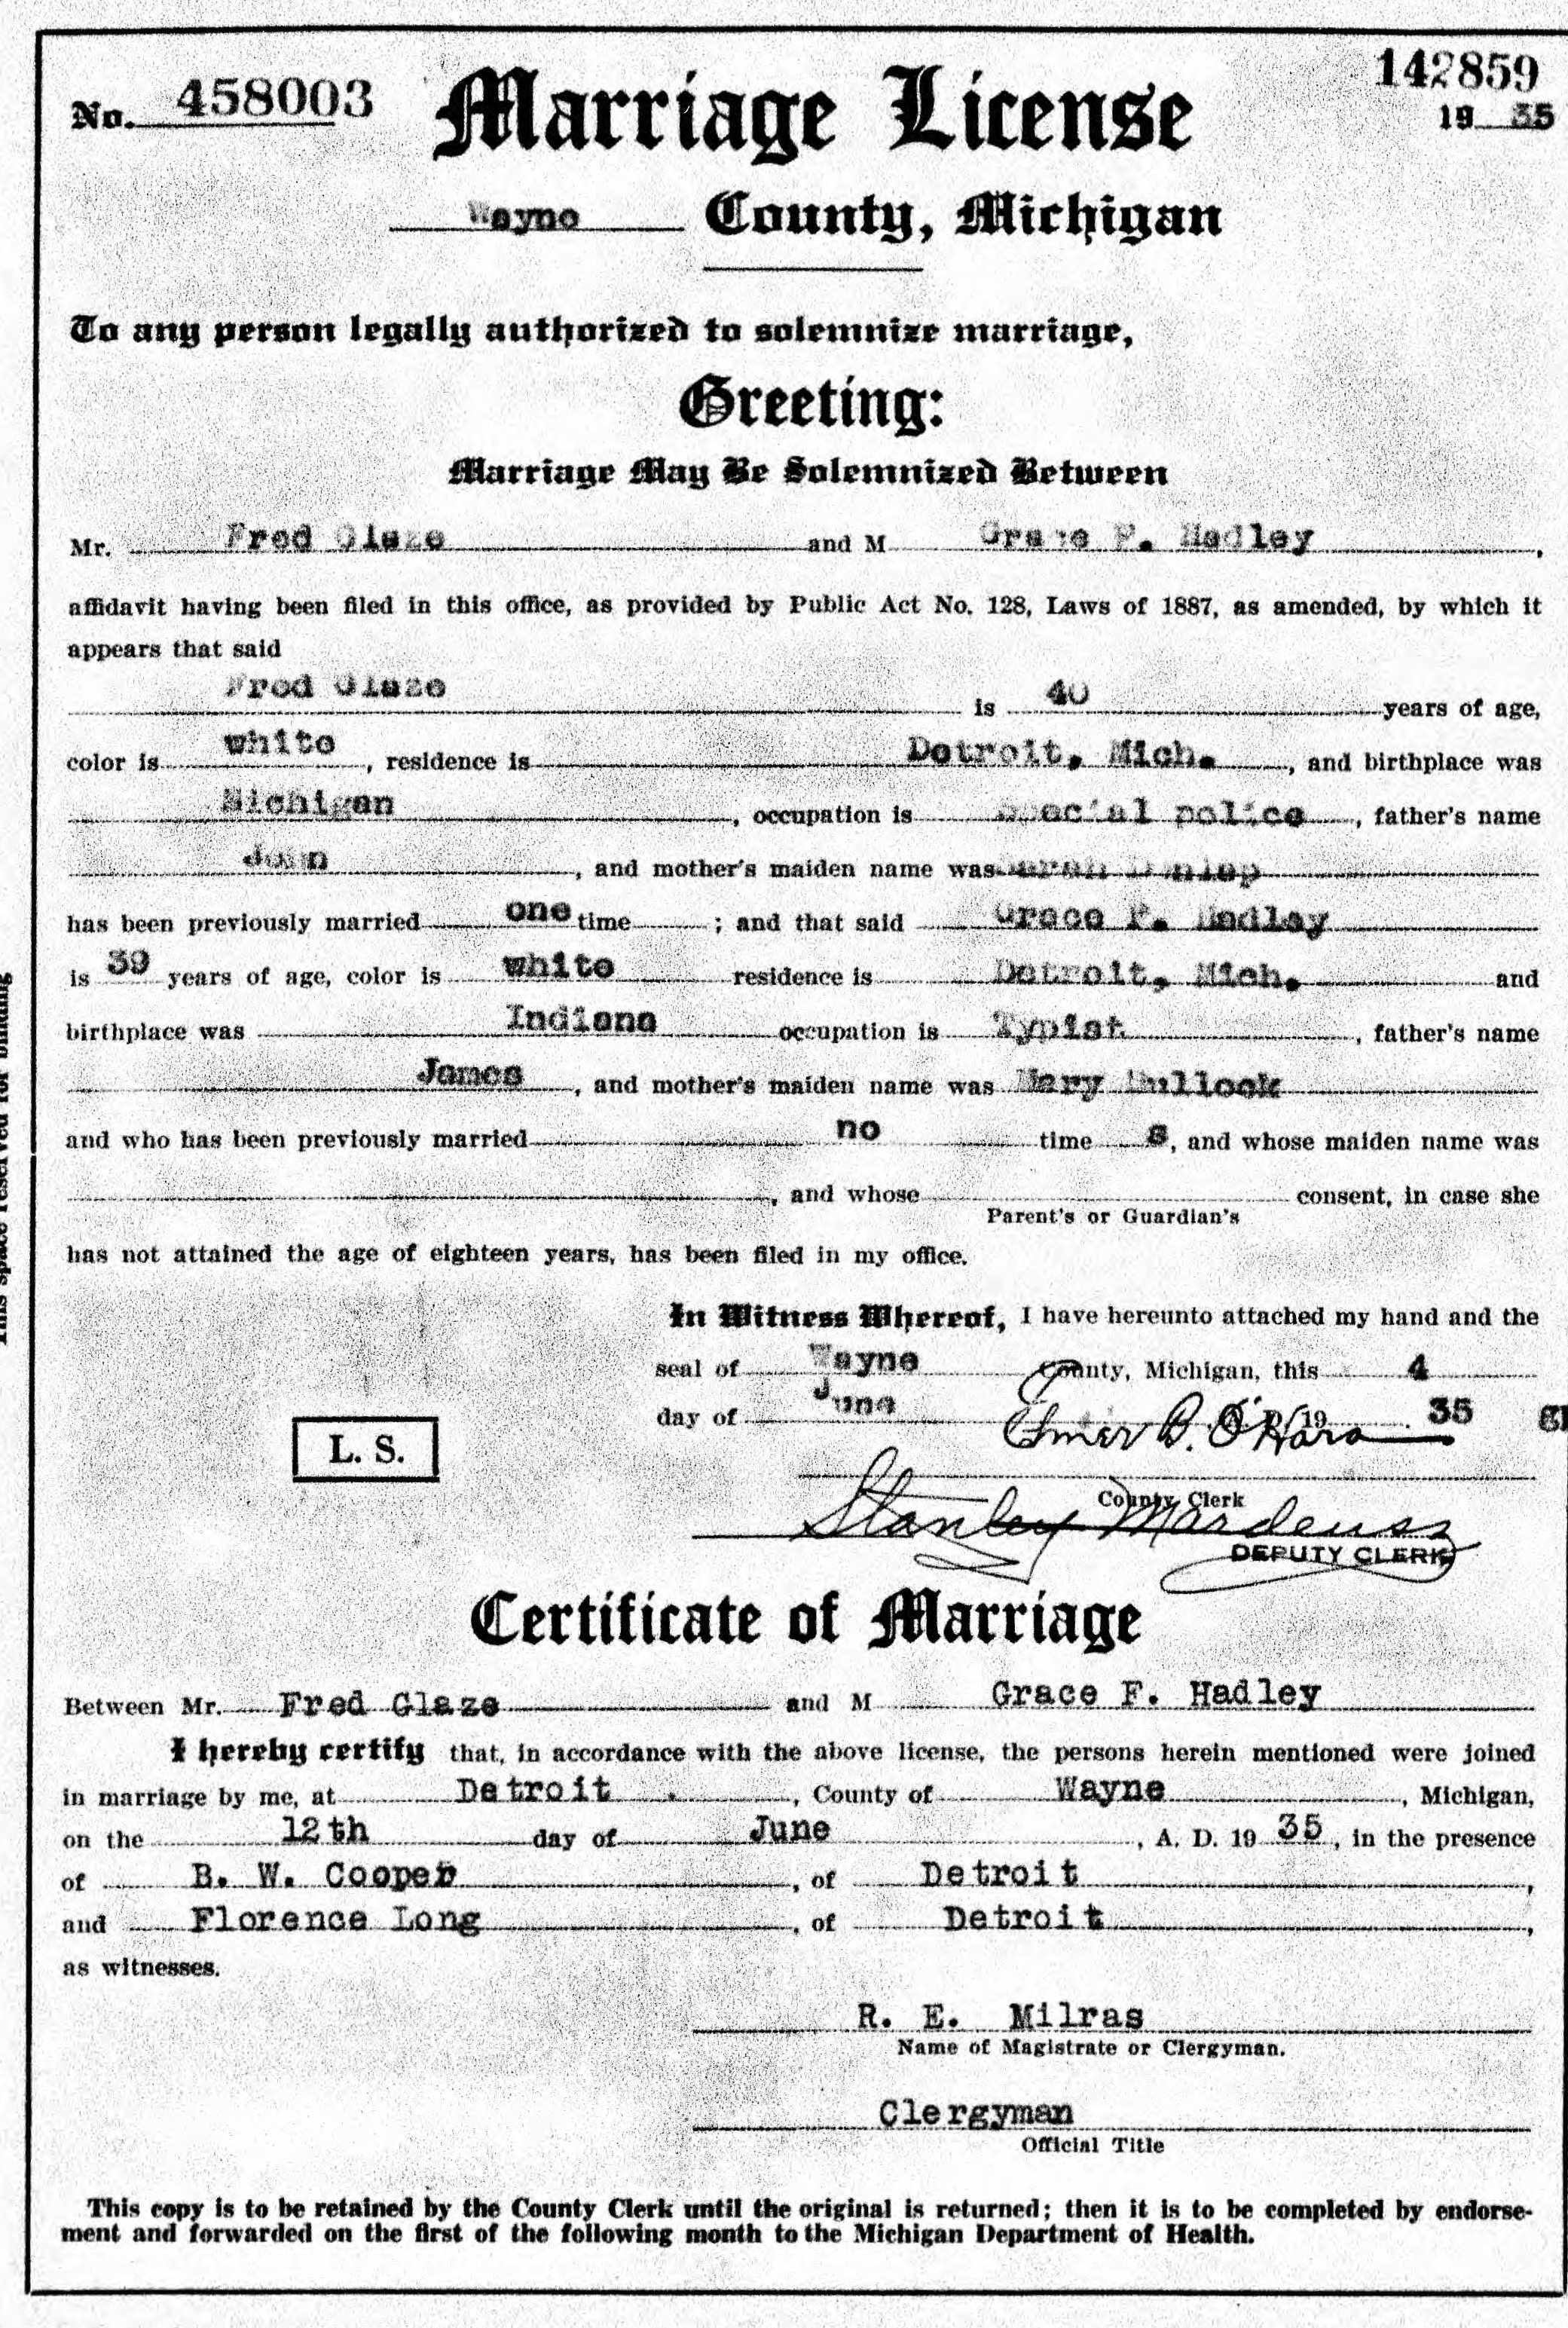 1935 Marriage Fred Glaze And Grace Hadley